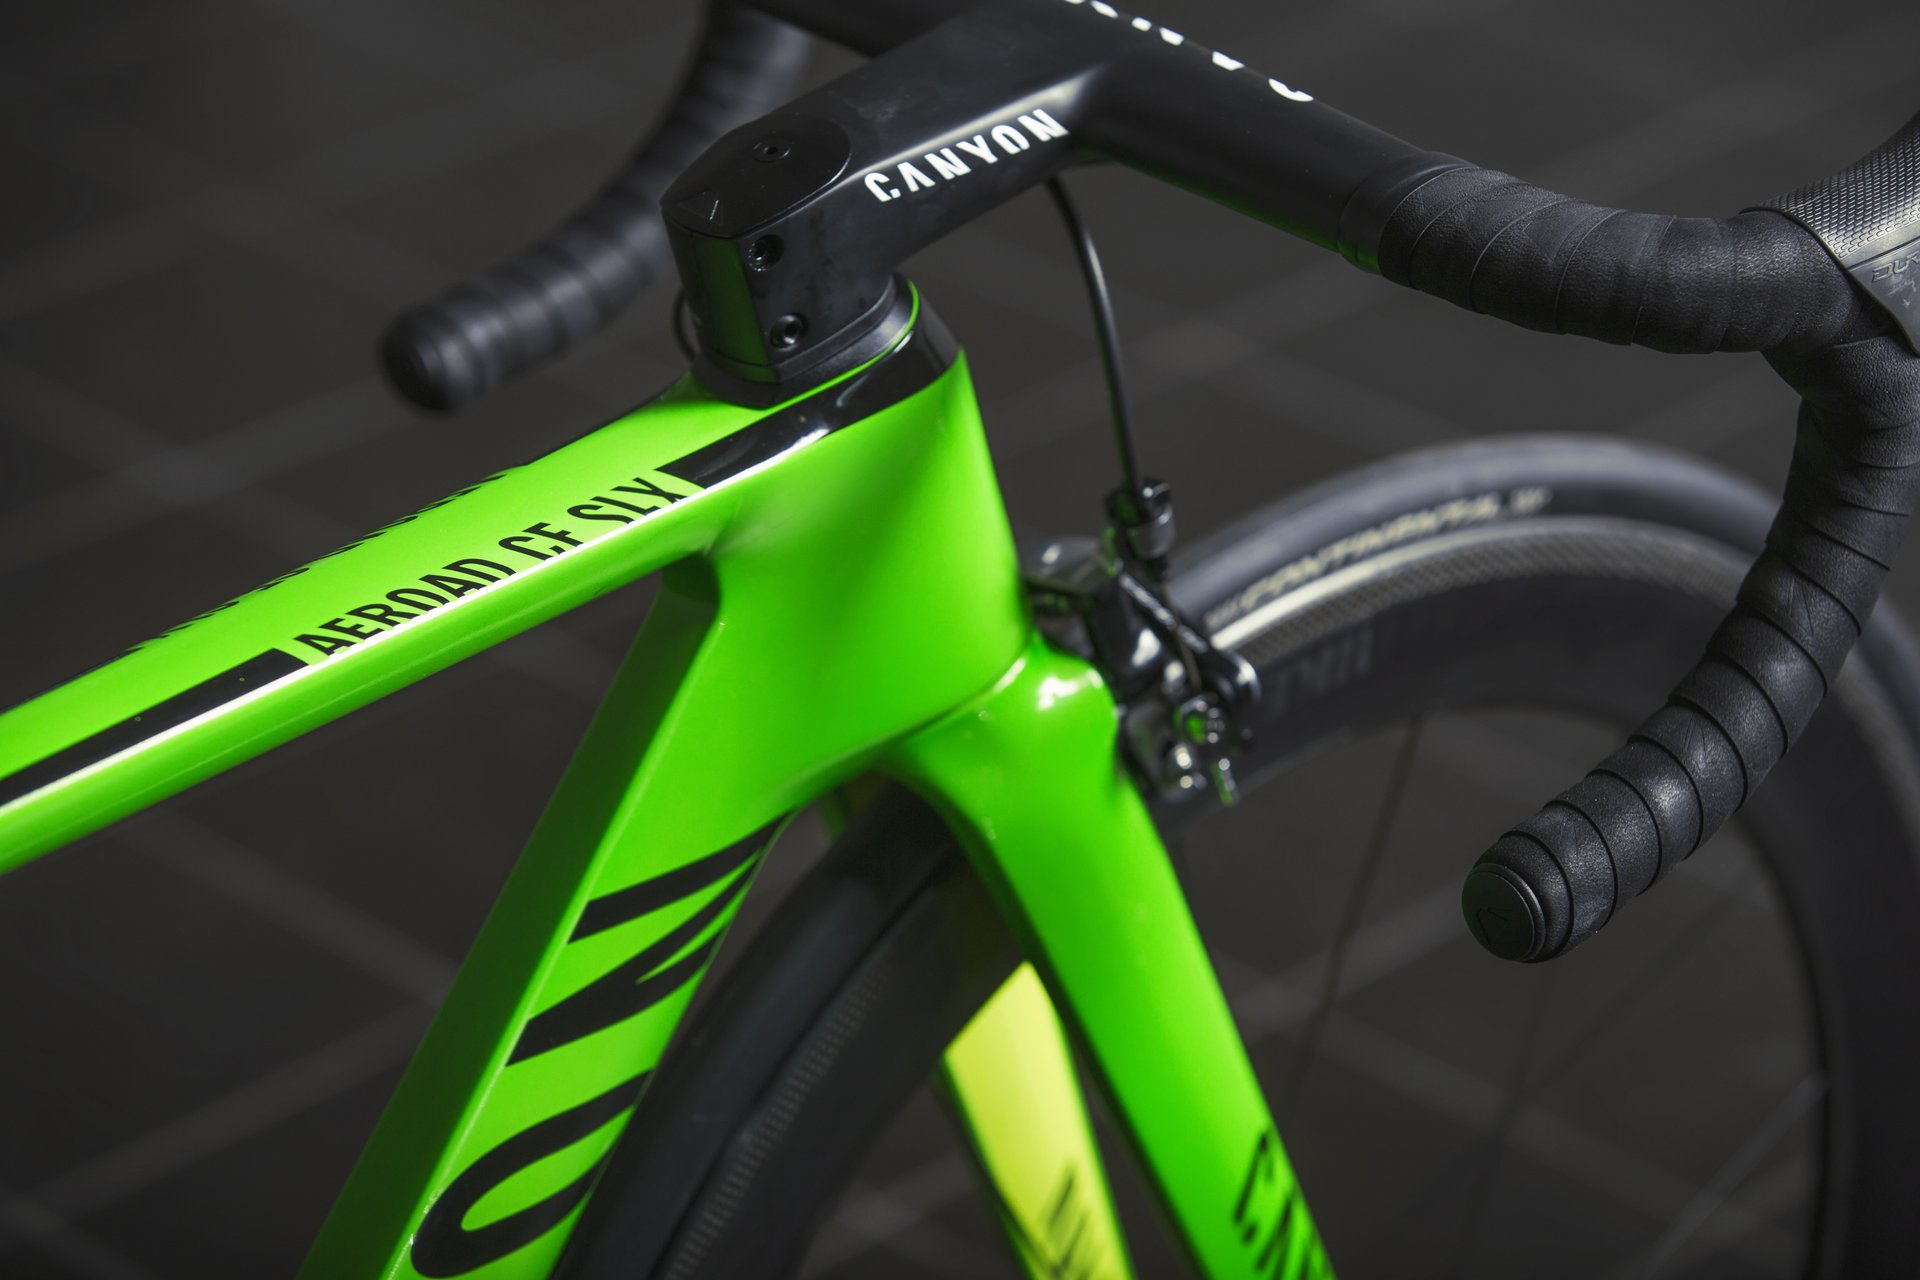 CapoVelo com | Canyon Bikes Officially Opens Online Sales in